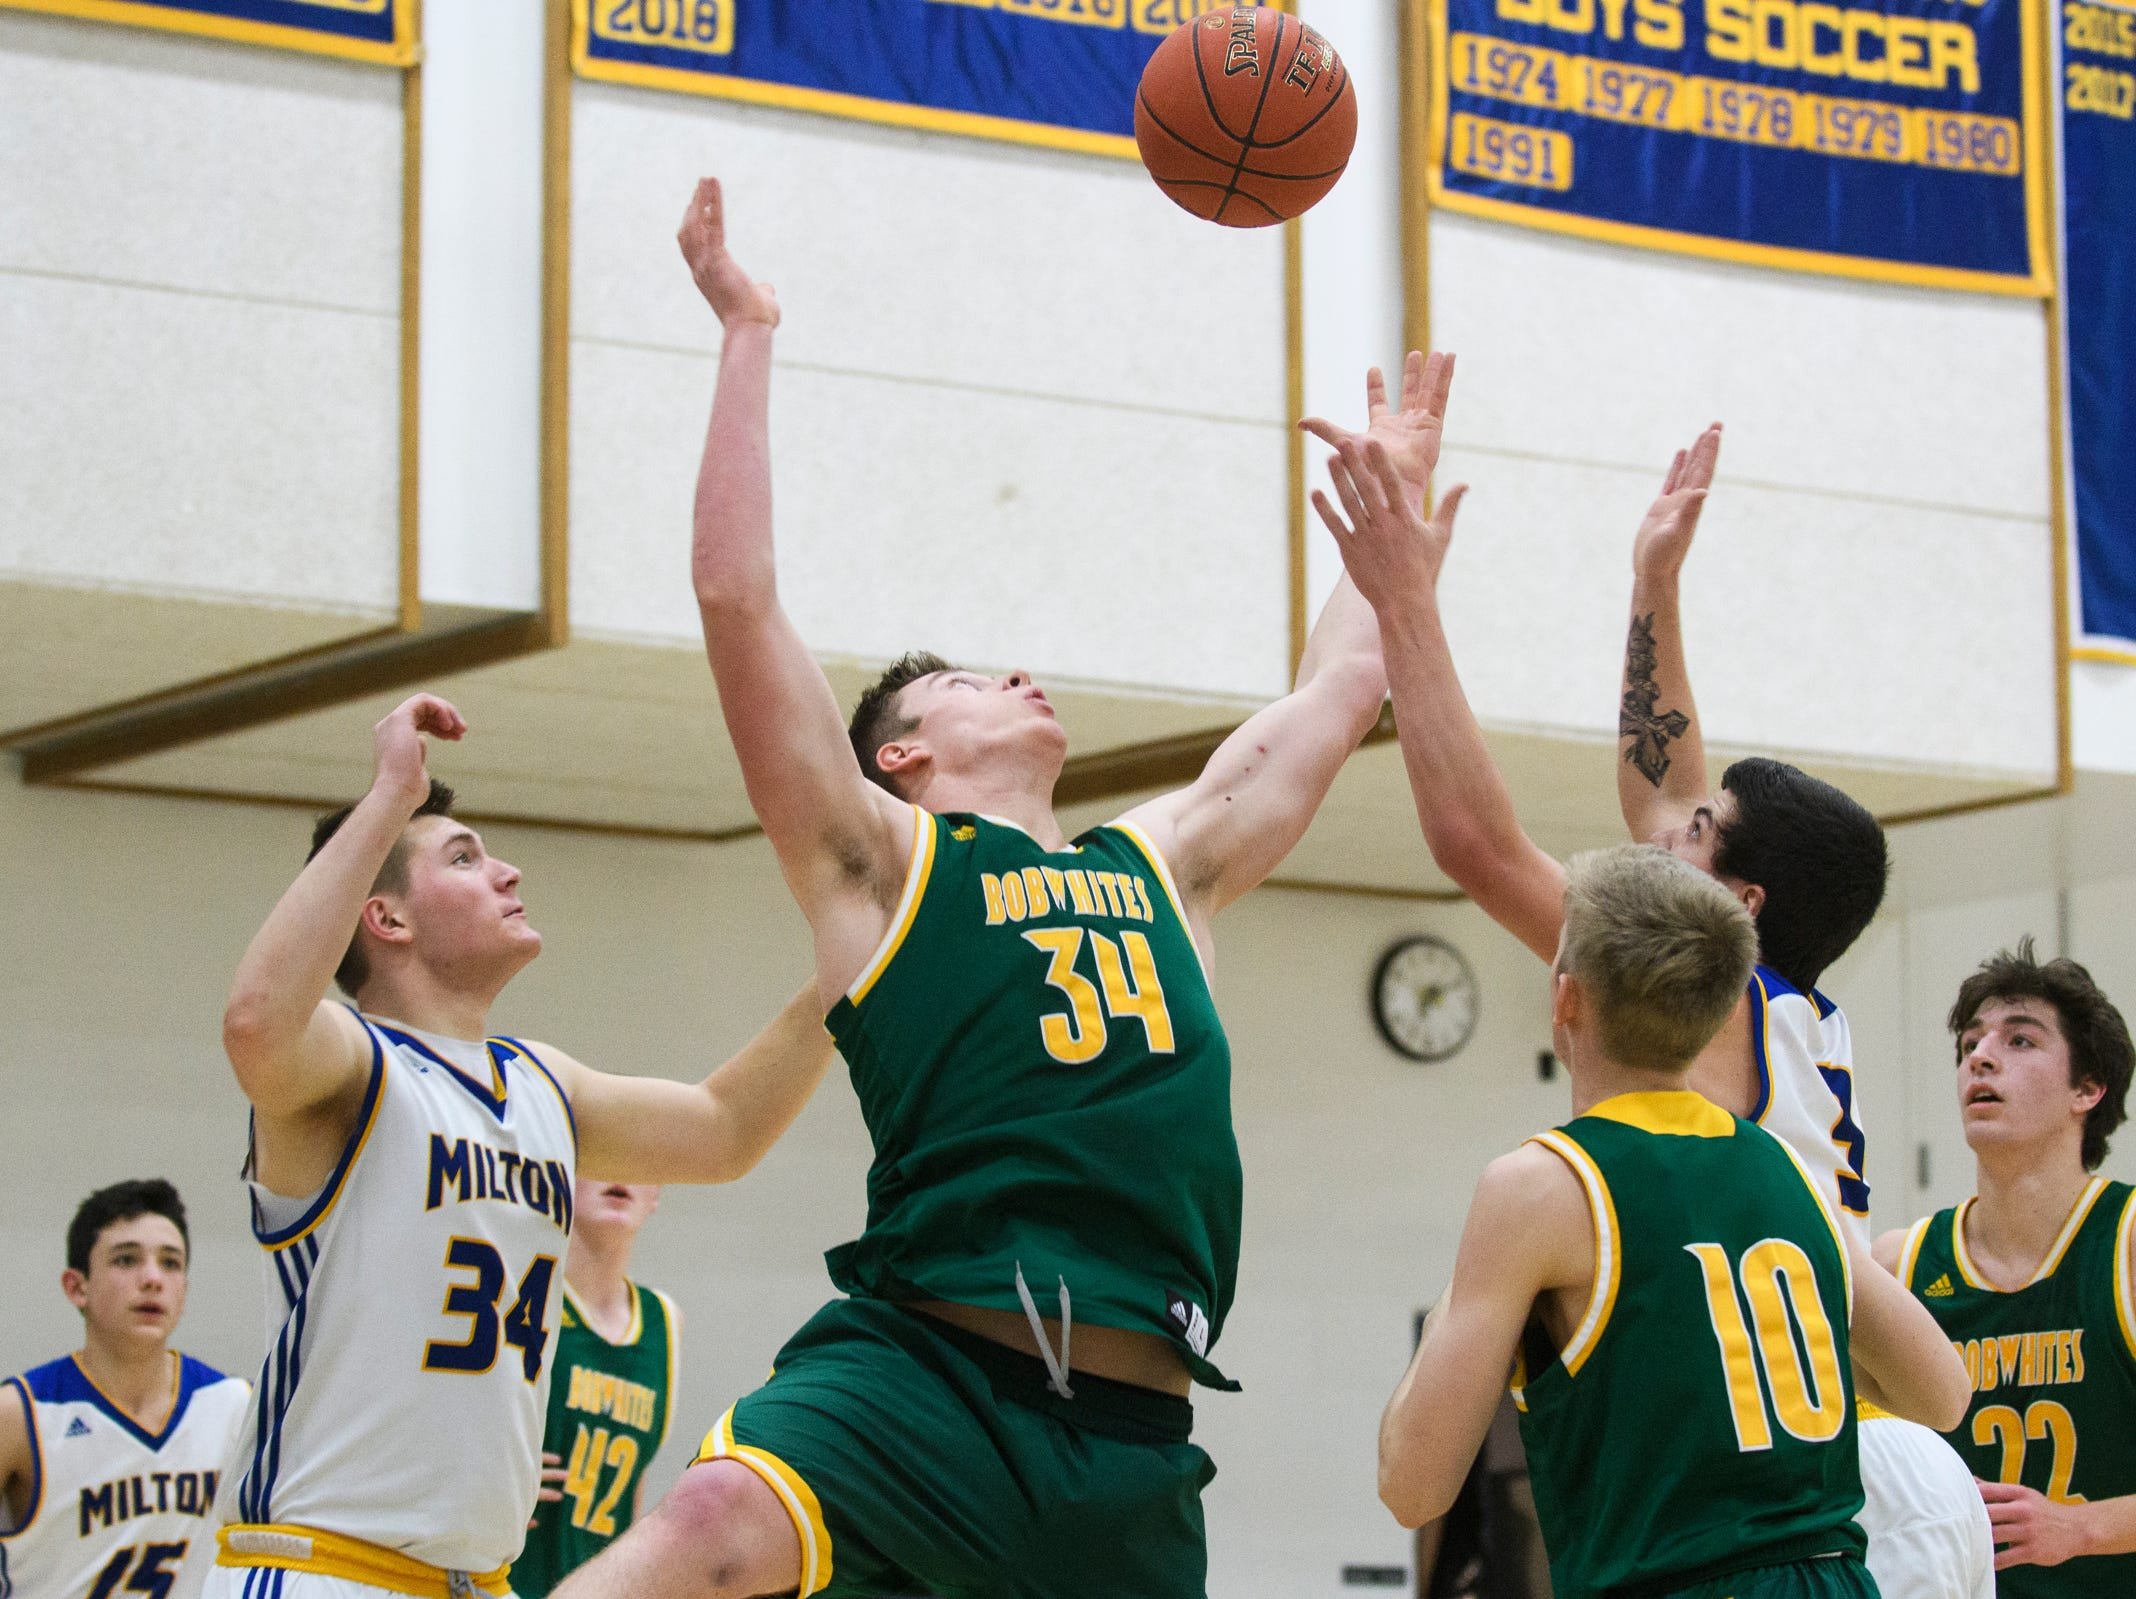 BFA's Nick Voyer (34) battles for the rebound with Milton's Coby Mason (34) and Colby Ducharme (3) during the boys basketball game between the BFA St. Albans Bobwhites and the Milton Yellowjackets at Milton High School on Tuesday night January 15, 2019 in Milton.